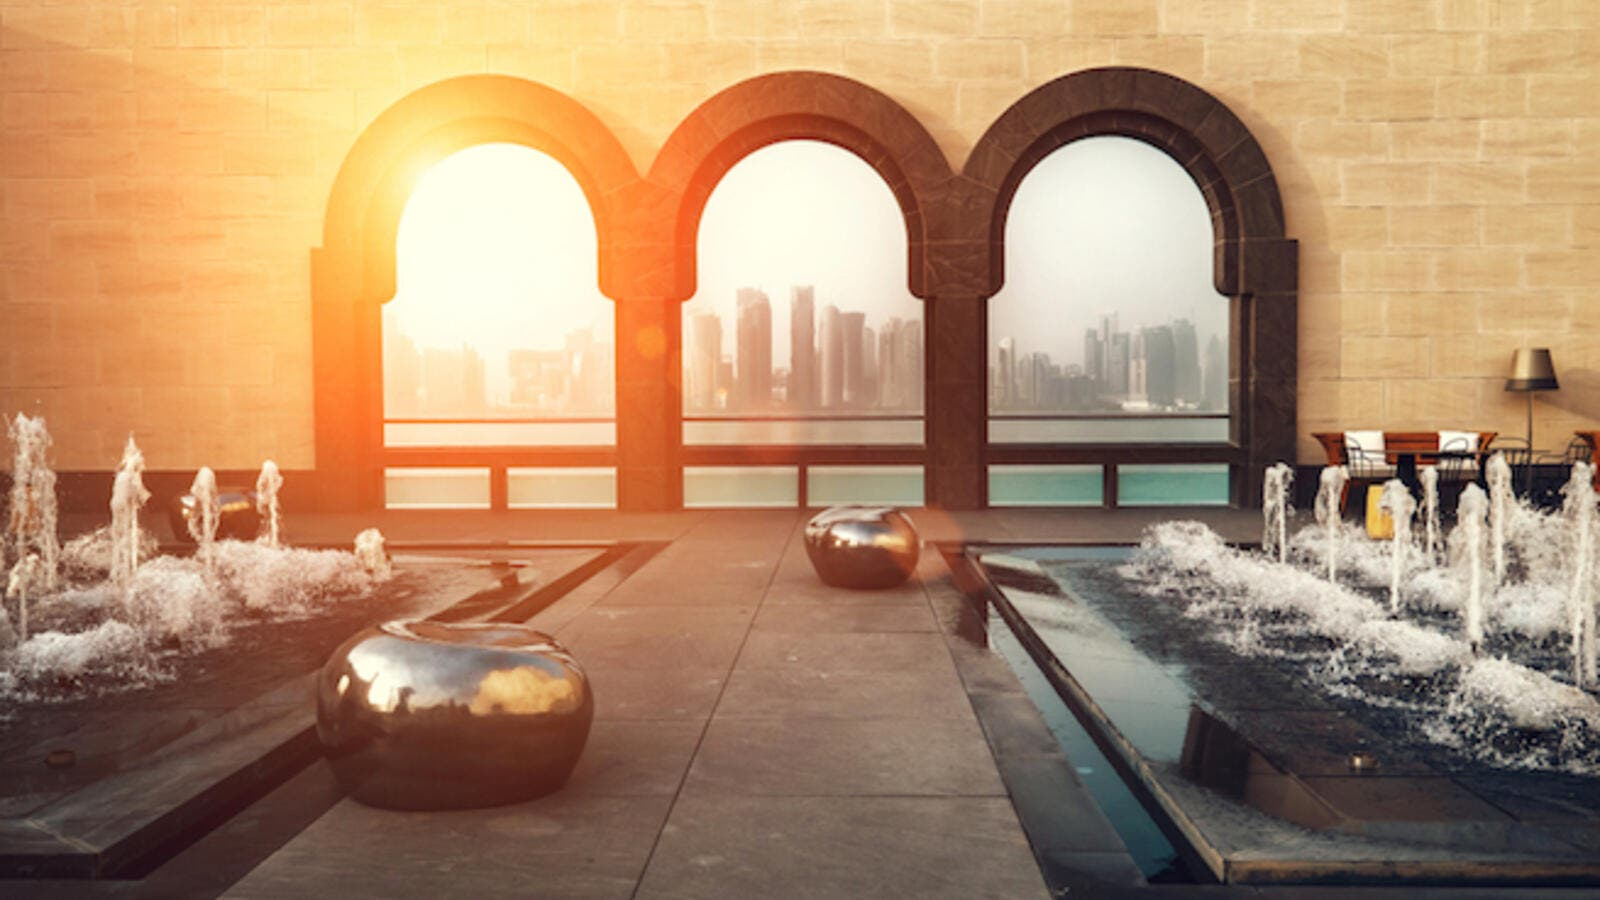 In the statement, al-Jaida further said that Islamic banks in Qatar have encompassed the largest segment of the Islamic finance market, launching ambitious expansion plans abroad in recent years. (Shutterstock)